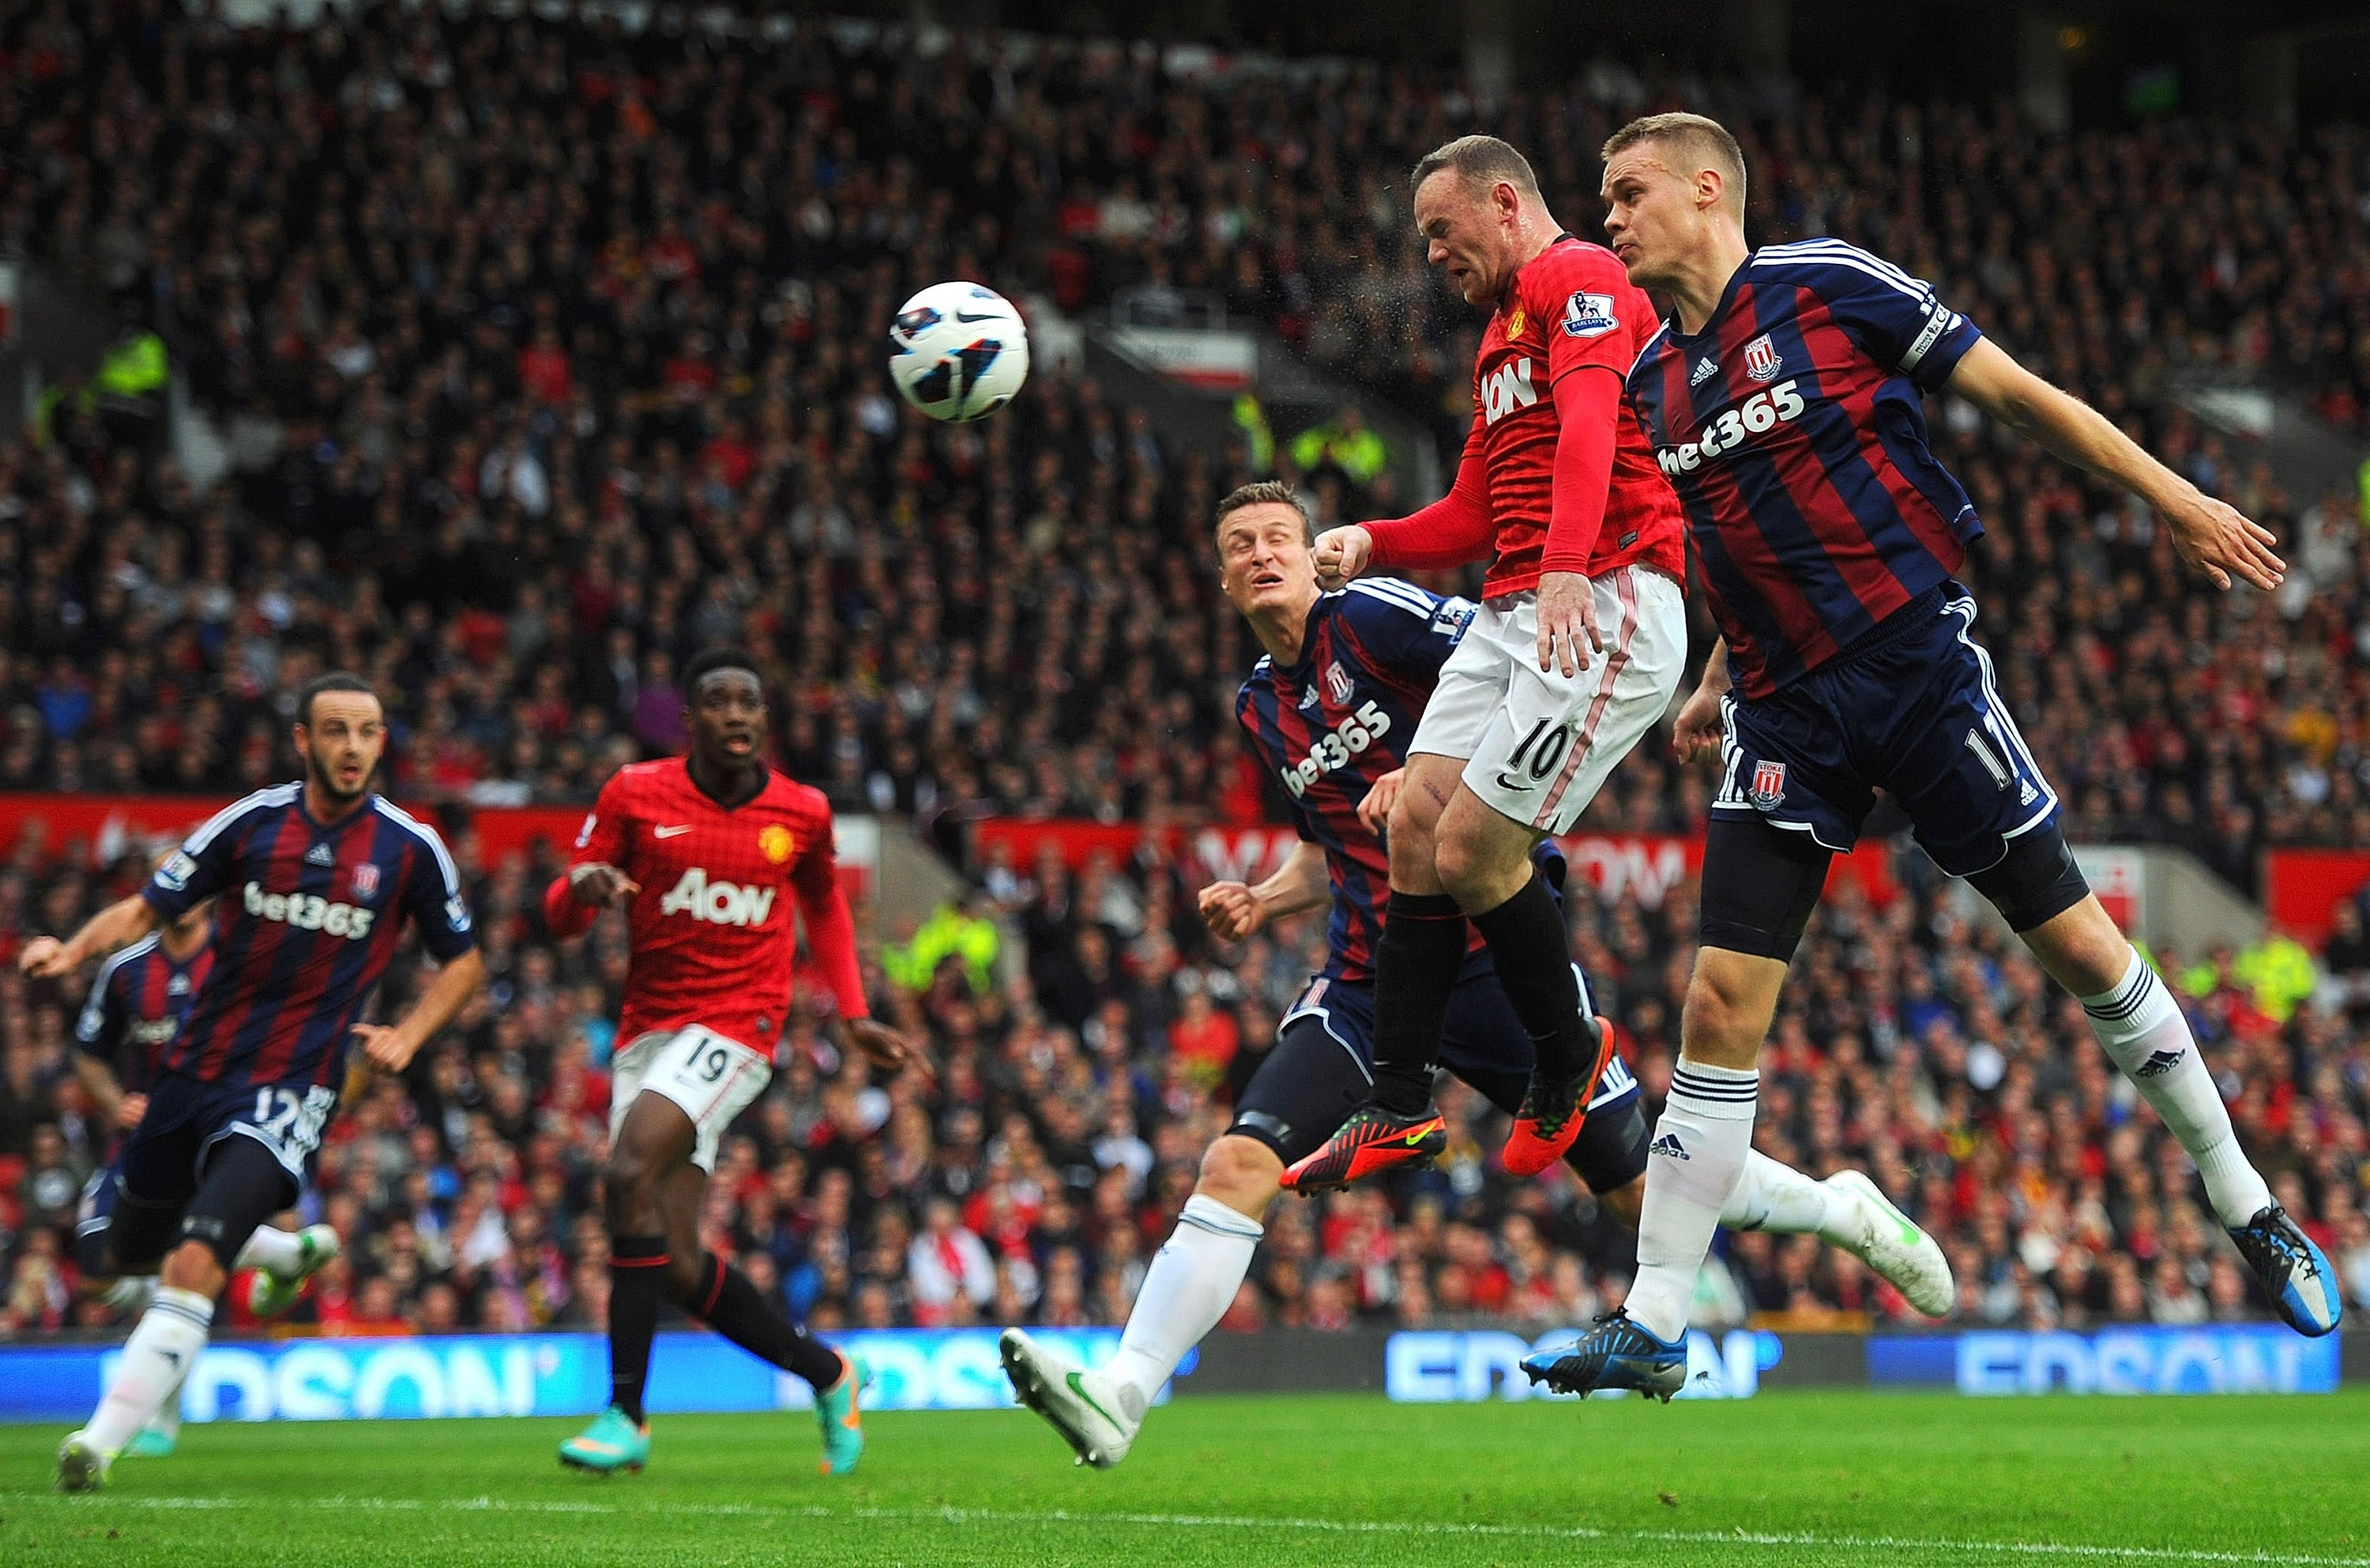 Can United continue their mini revival against Stoke?